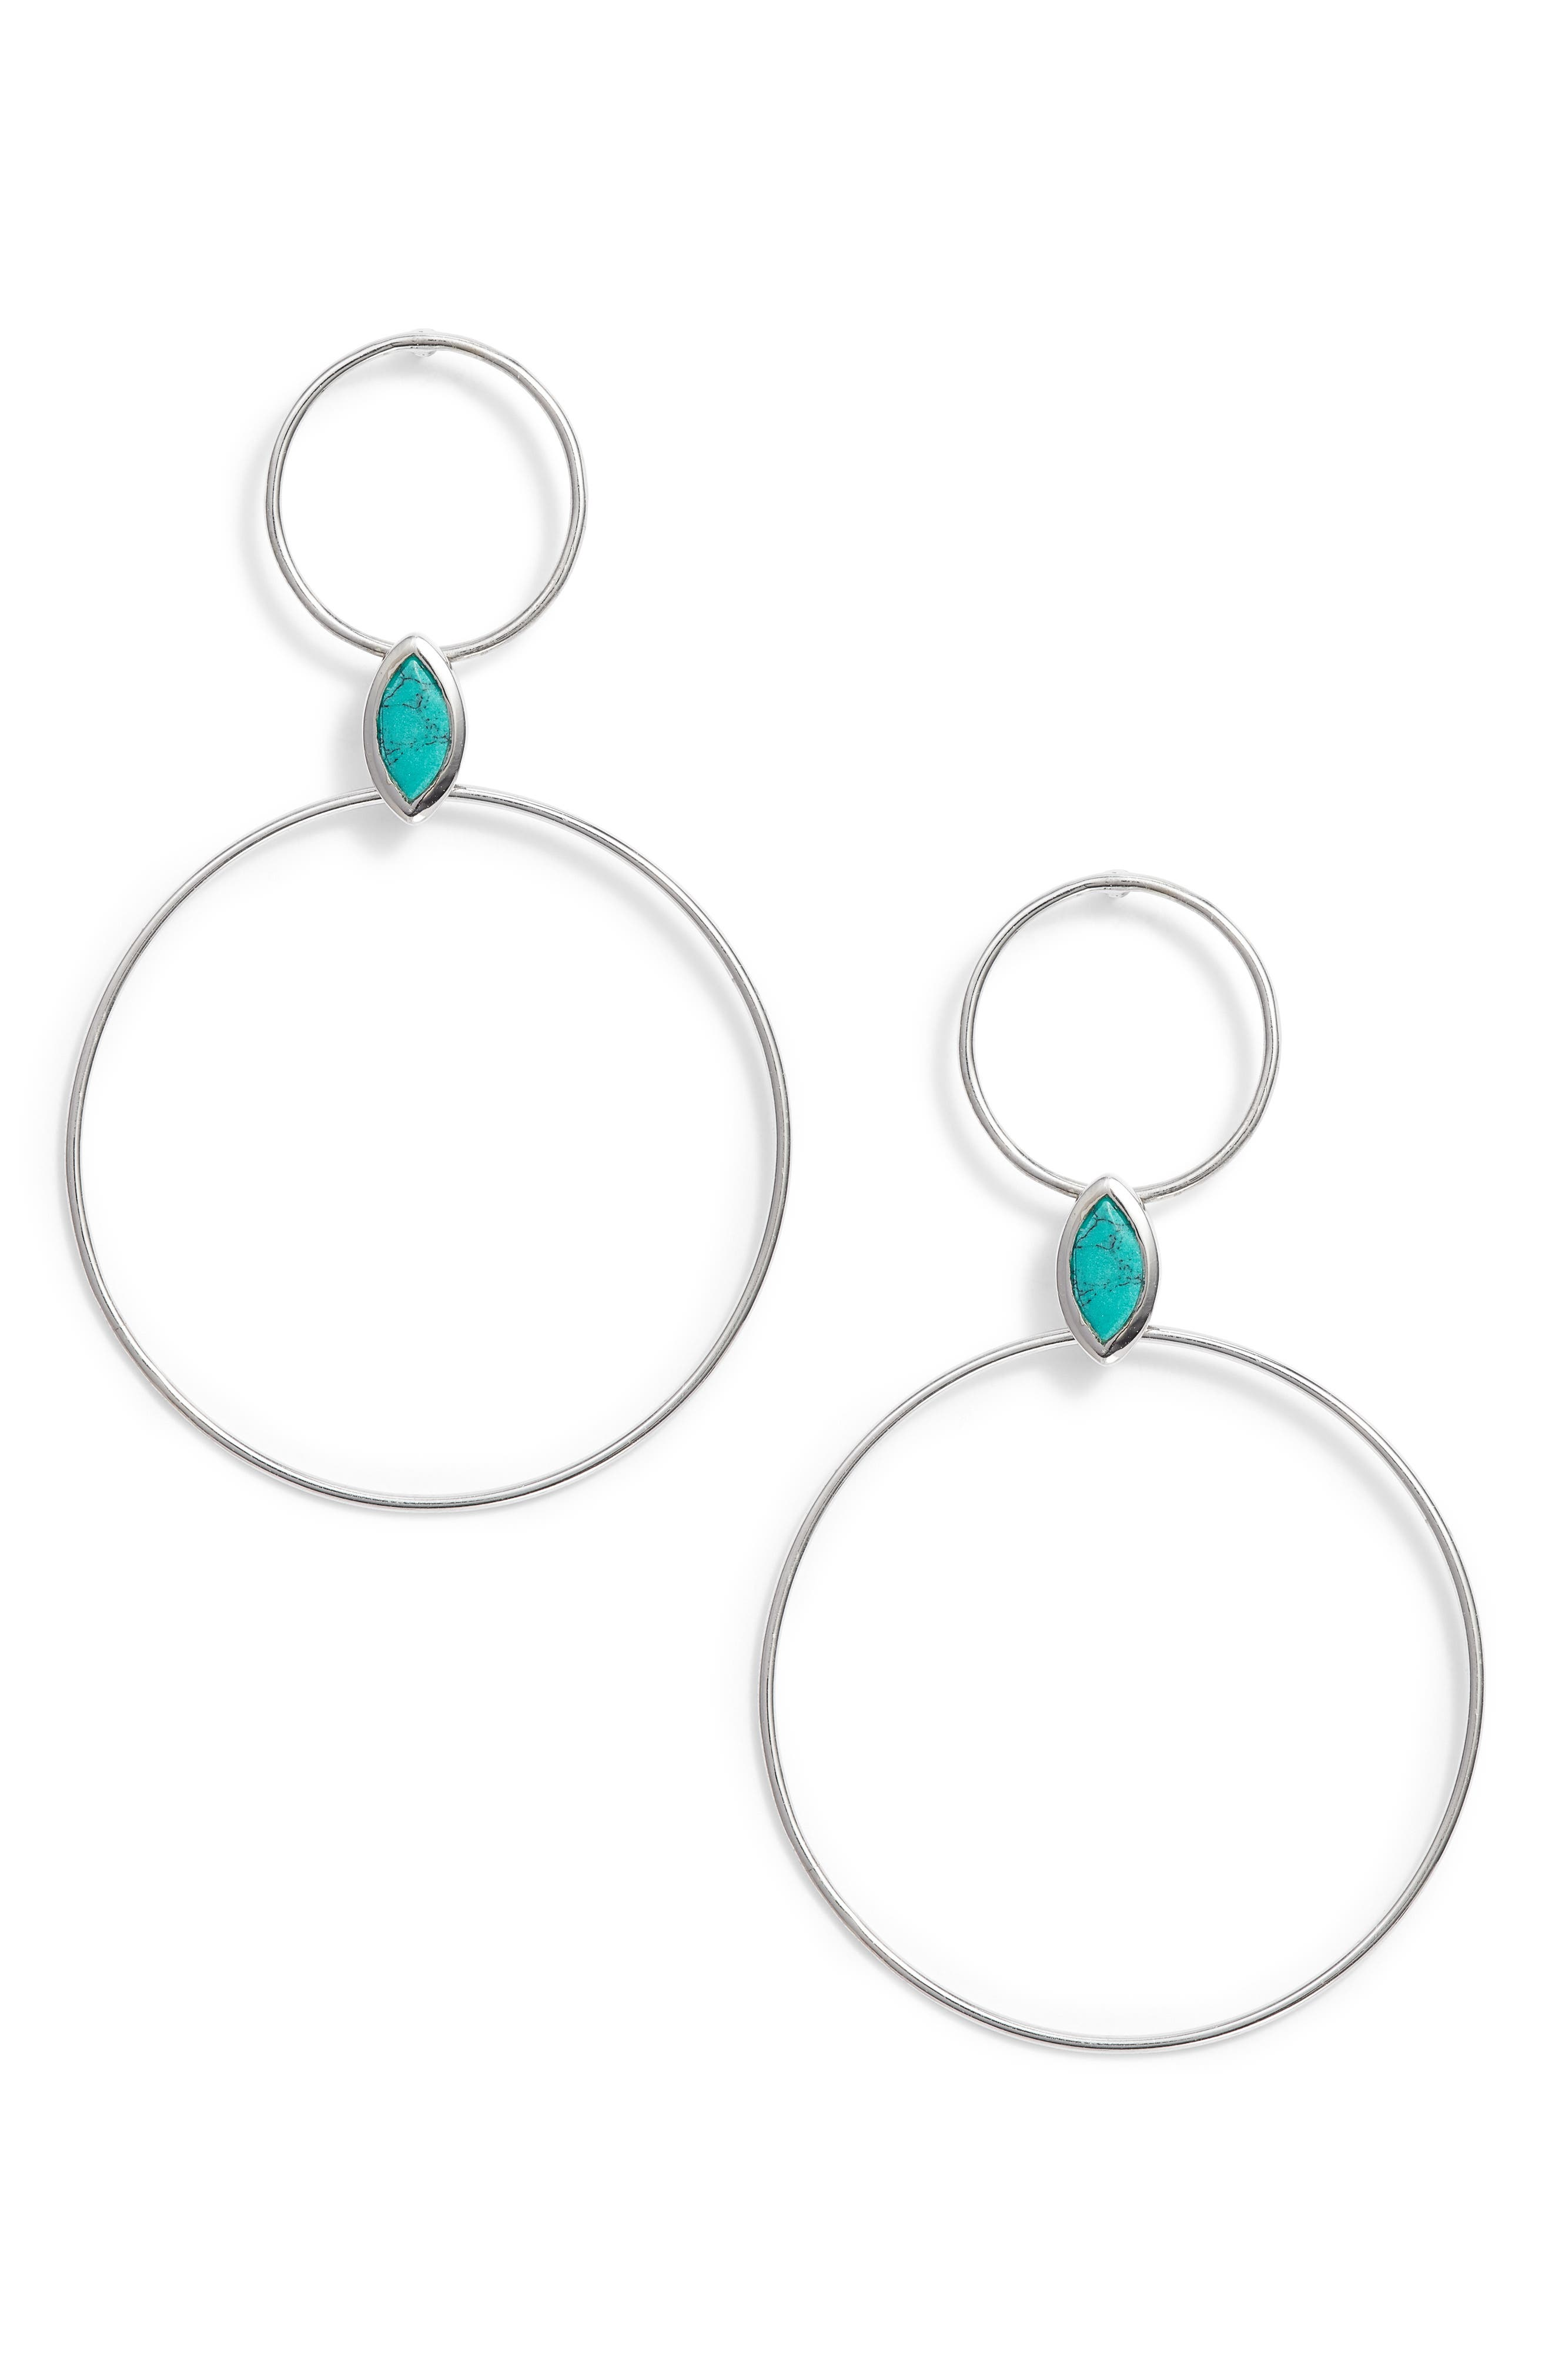 Double Circle Stone Drop Earrings,                         Main,                         color, Silver/ Turquoise